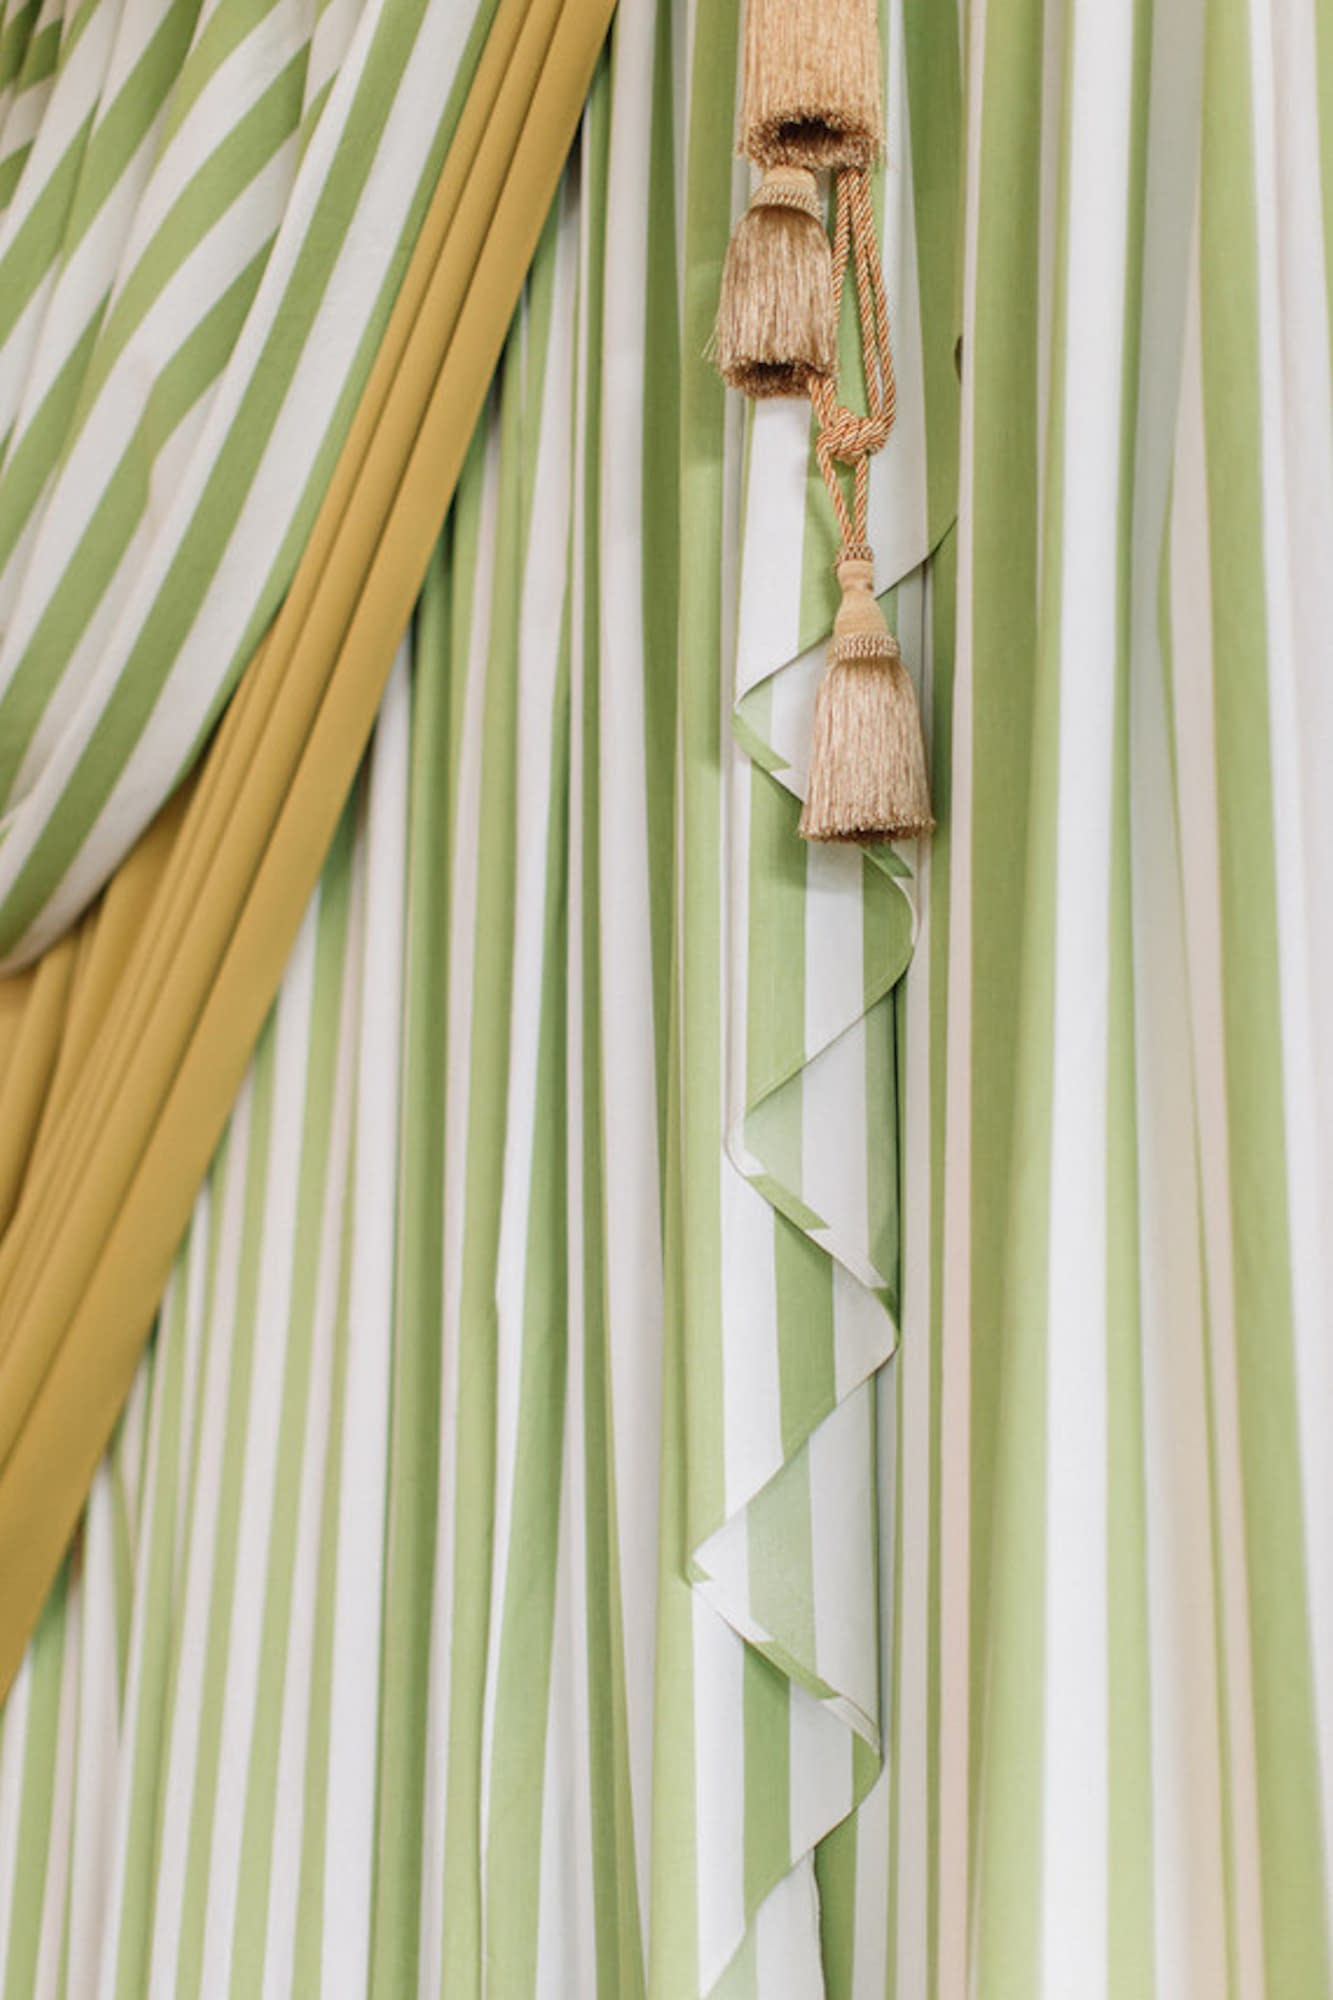 Bespoke backdrop in green and white stripes with mustard at Trinity Buoy Wharf London England